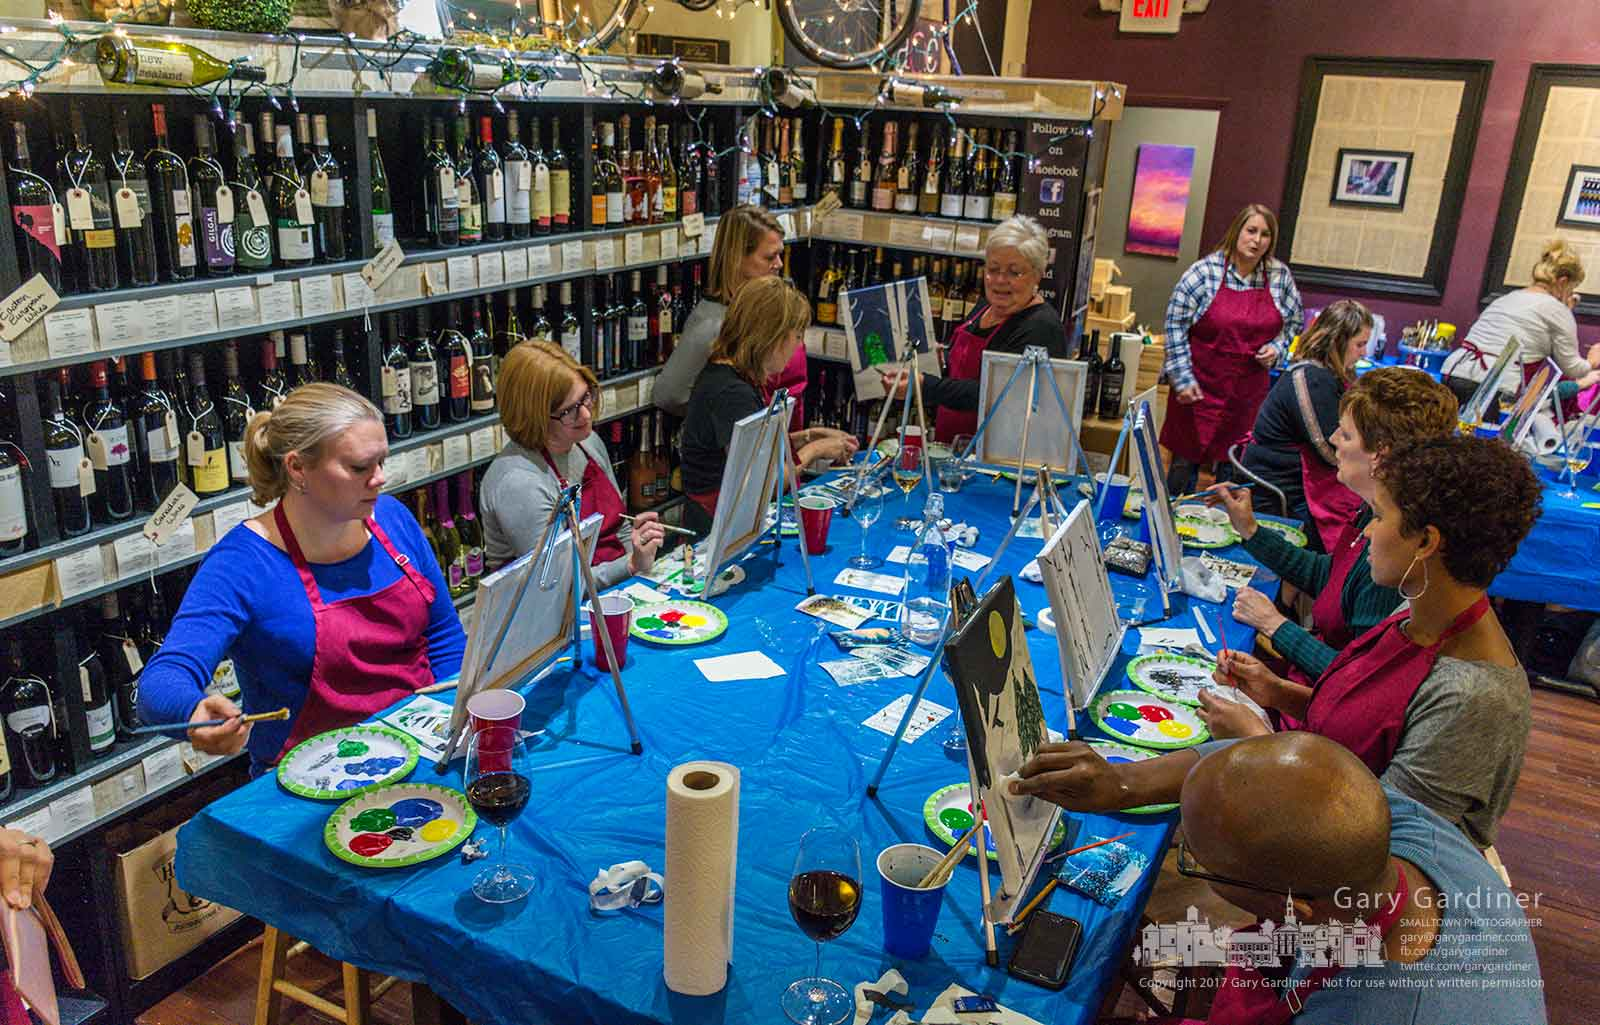 A group of artists and wine enthusiasts combine their talent in the Sip & Sketch night out with the Arts Council of Westerville at Meza Wine Shop in Uptown Westerville. My Final Photo for Nov. 29, 2017.